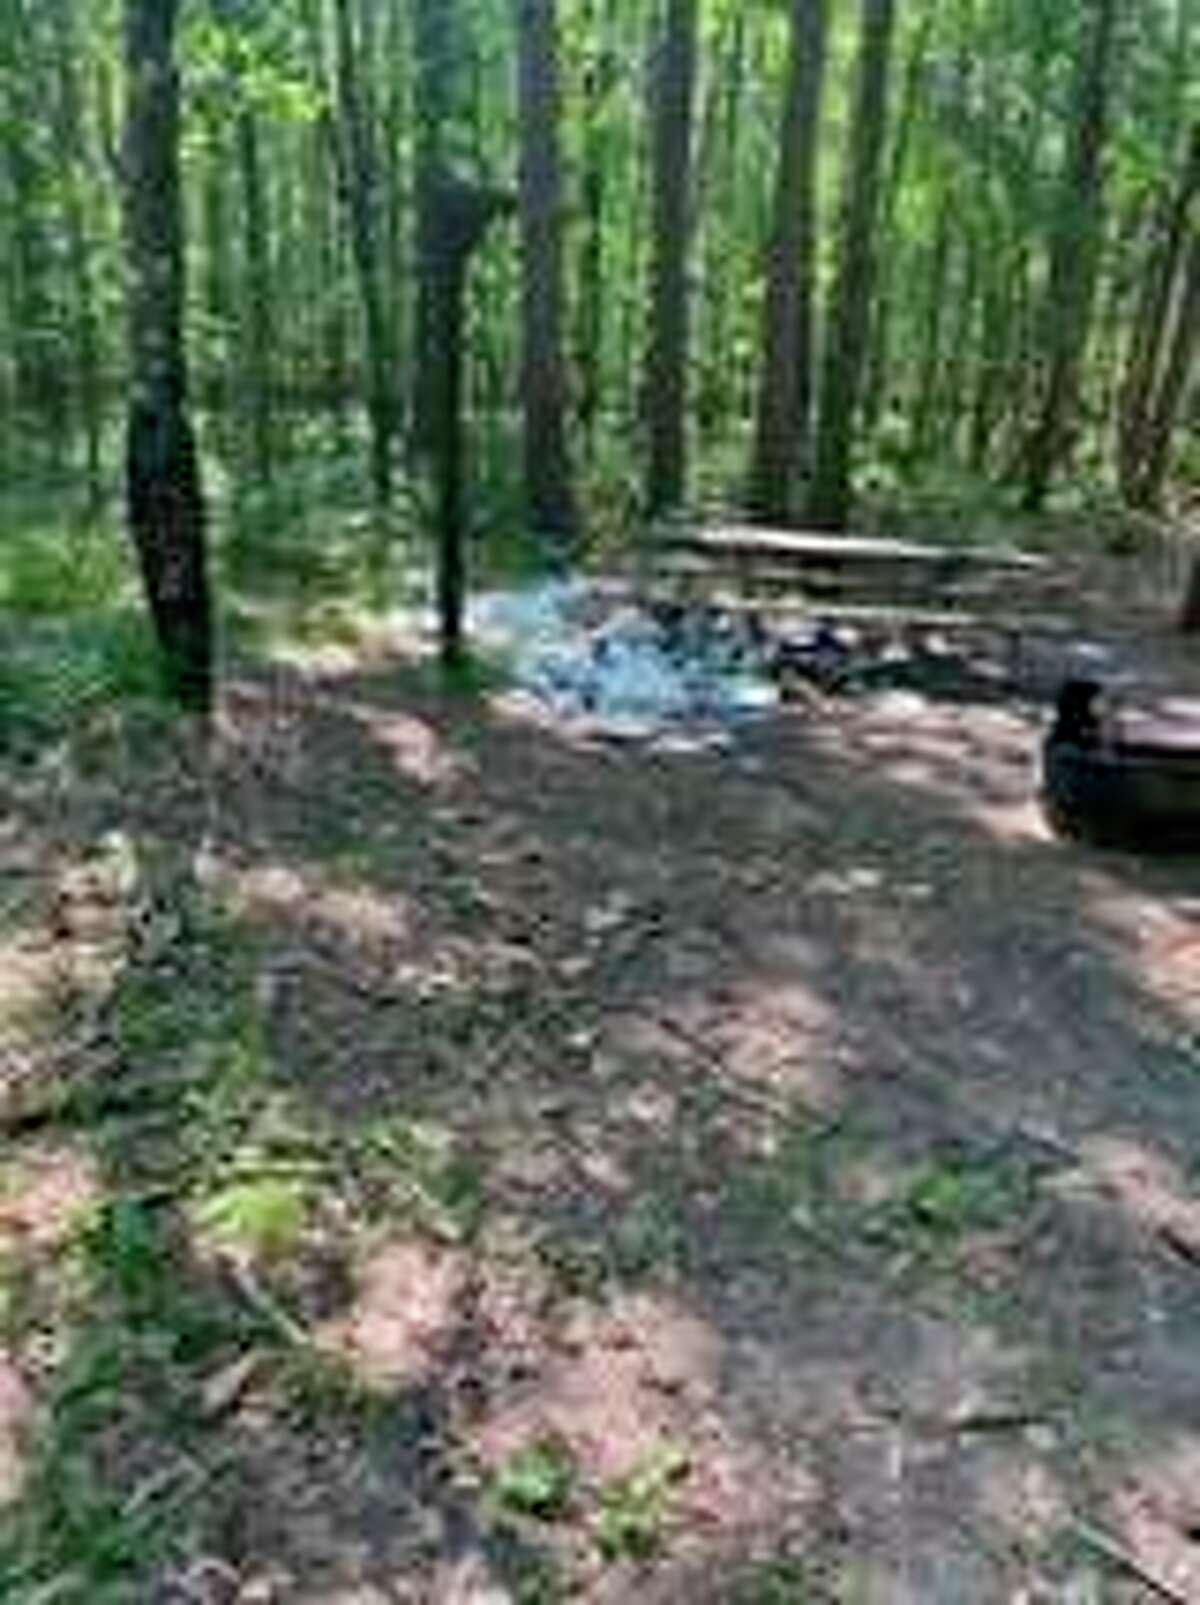 The River Rangers are reminding people about the Leave No Trace principles. A camper left this large amount of garbage behind in early June, the Rangers helped identify the camper and cleaned up the site.(Courtesy photo/Huron-Manistee National Forests)